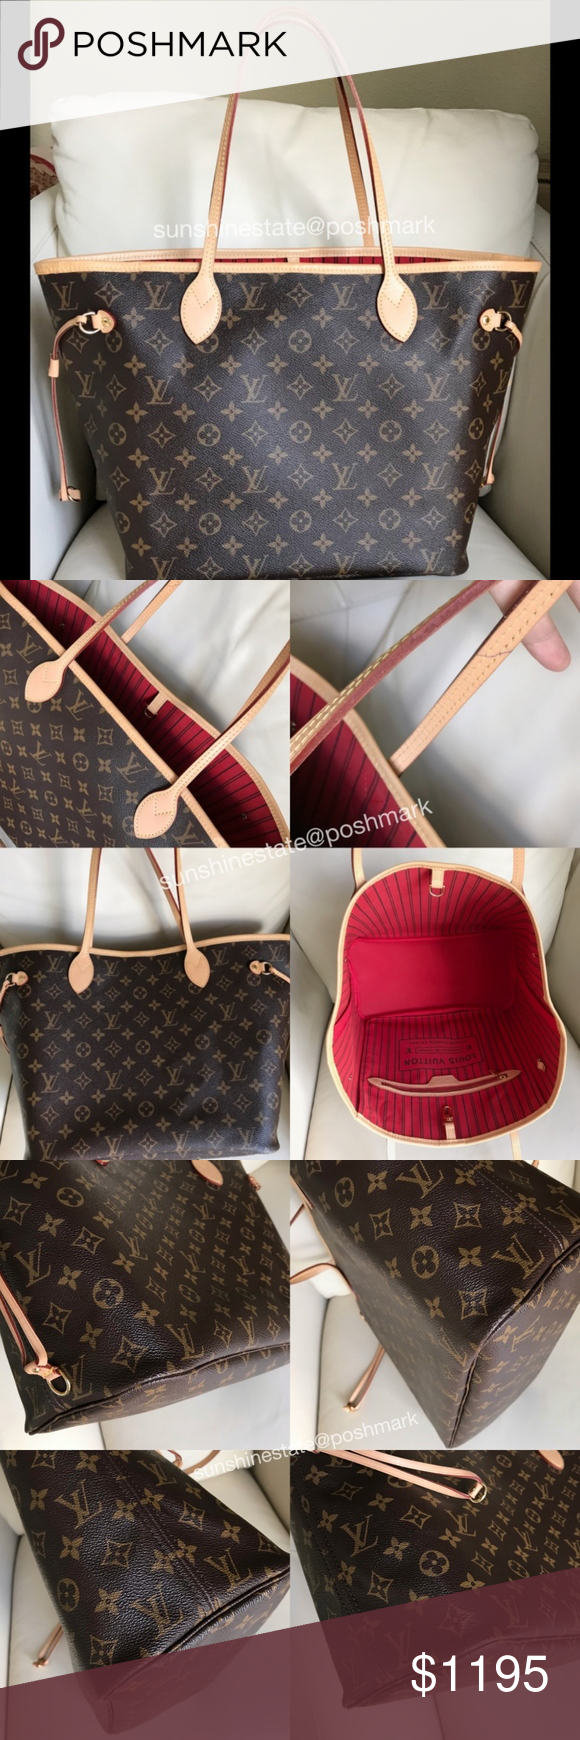 Louis Vuitton Neverfull MM Monogram bag red lining Authentic LV Neverfull  monogram MM Tote bag with red lining (Cherry)! Lightly used as pictured  strap ... 902e9ab4da